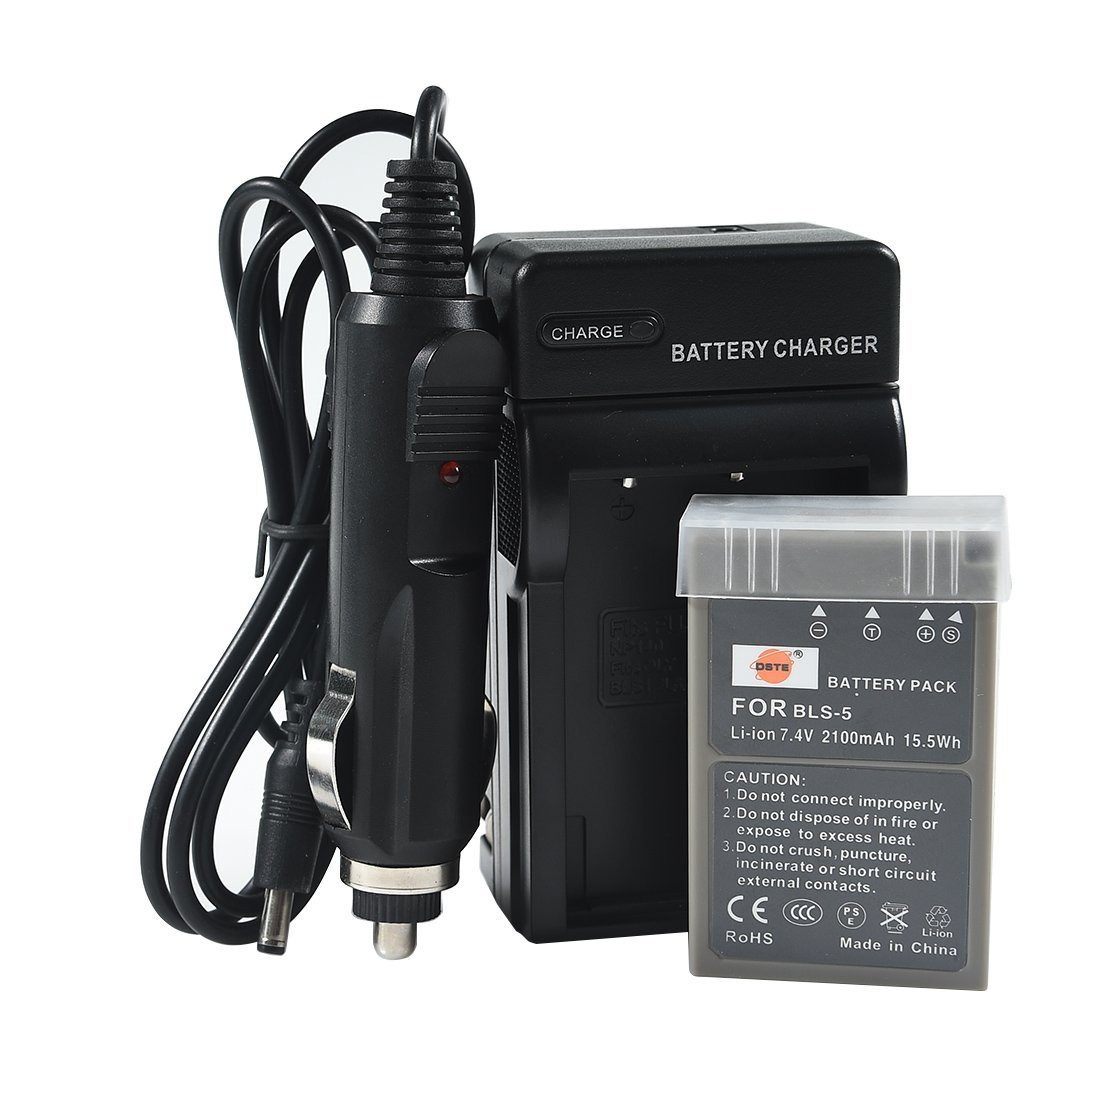 DSTE® PS-BLS5 Battery + DC84 Travel and Car Charger Adapter for Olympus OM-D E-400 410 420 450 600 620 E-P1 P2 P3 PL1 PL2 PLE15 PM1 PM2 M10 PL6 PL5 stylus 1 Camera as BLS-5